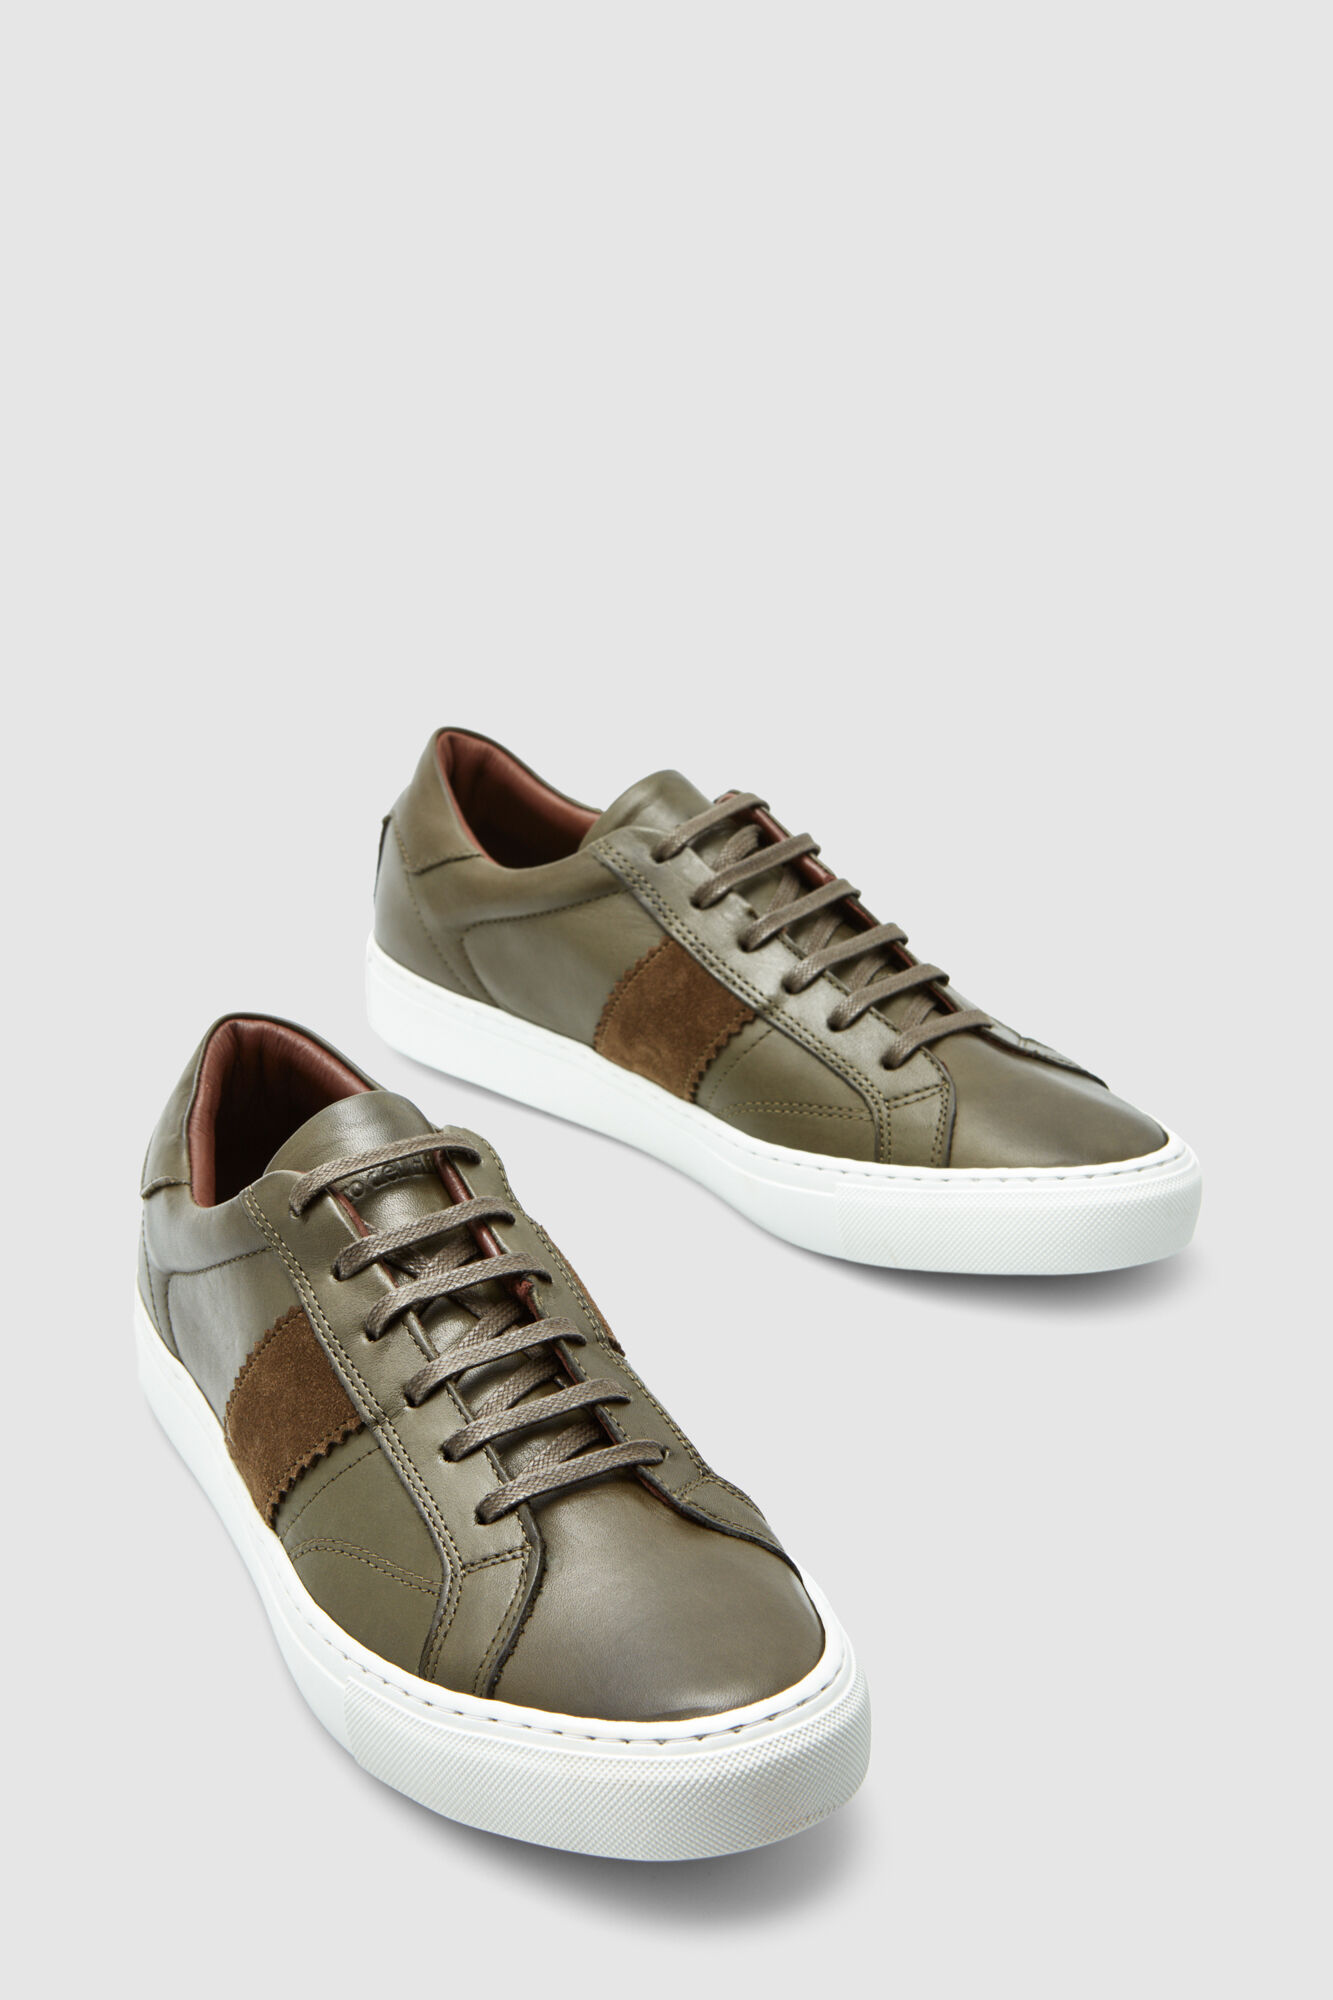 fe2ee79ab577 Pedro del Hierro Plain leather sneakers Green